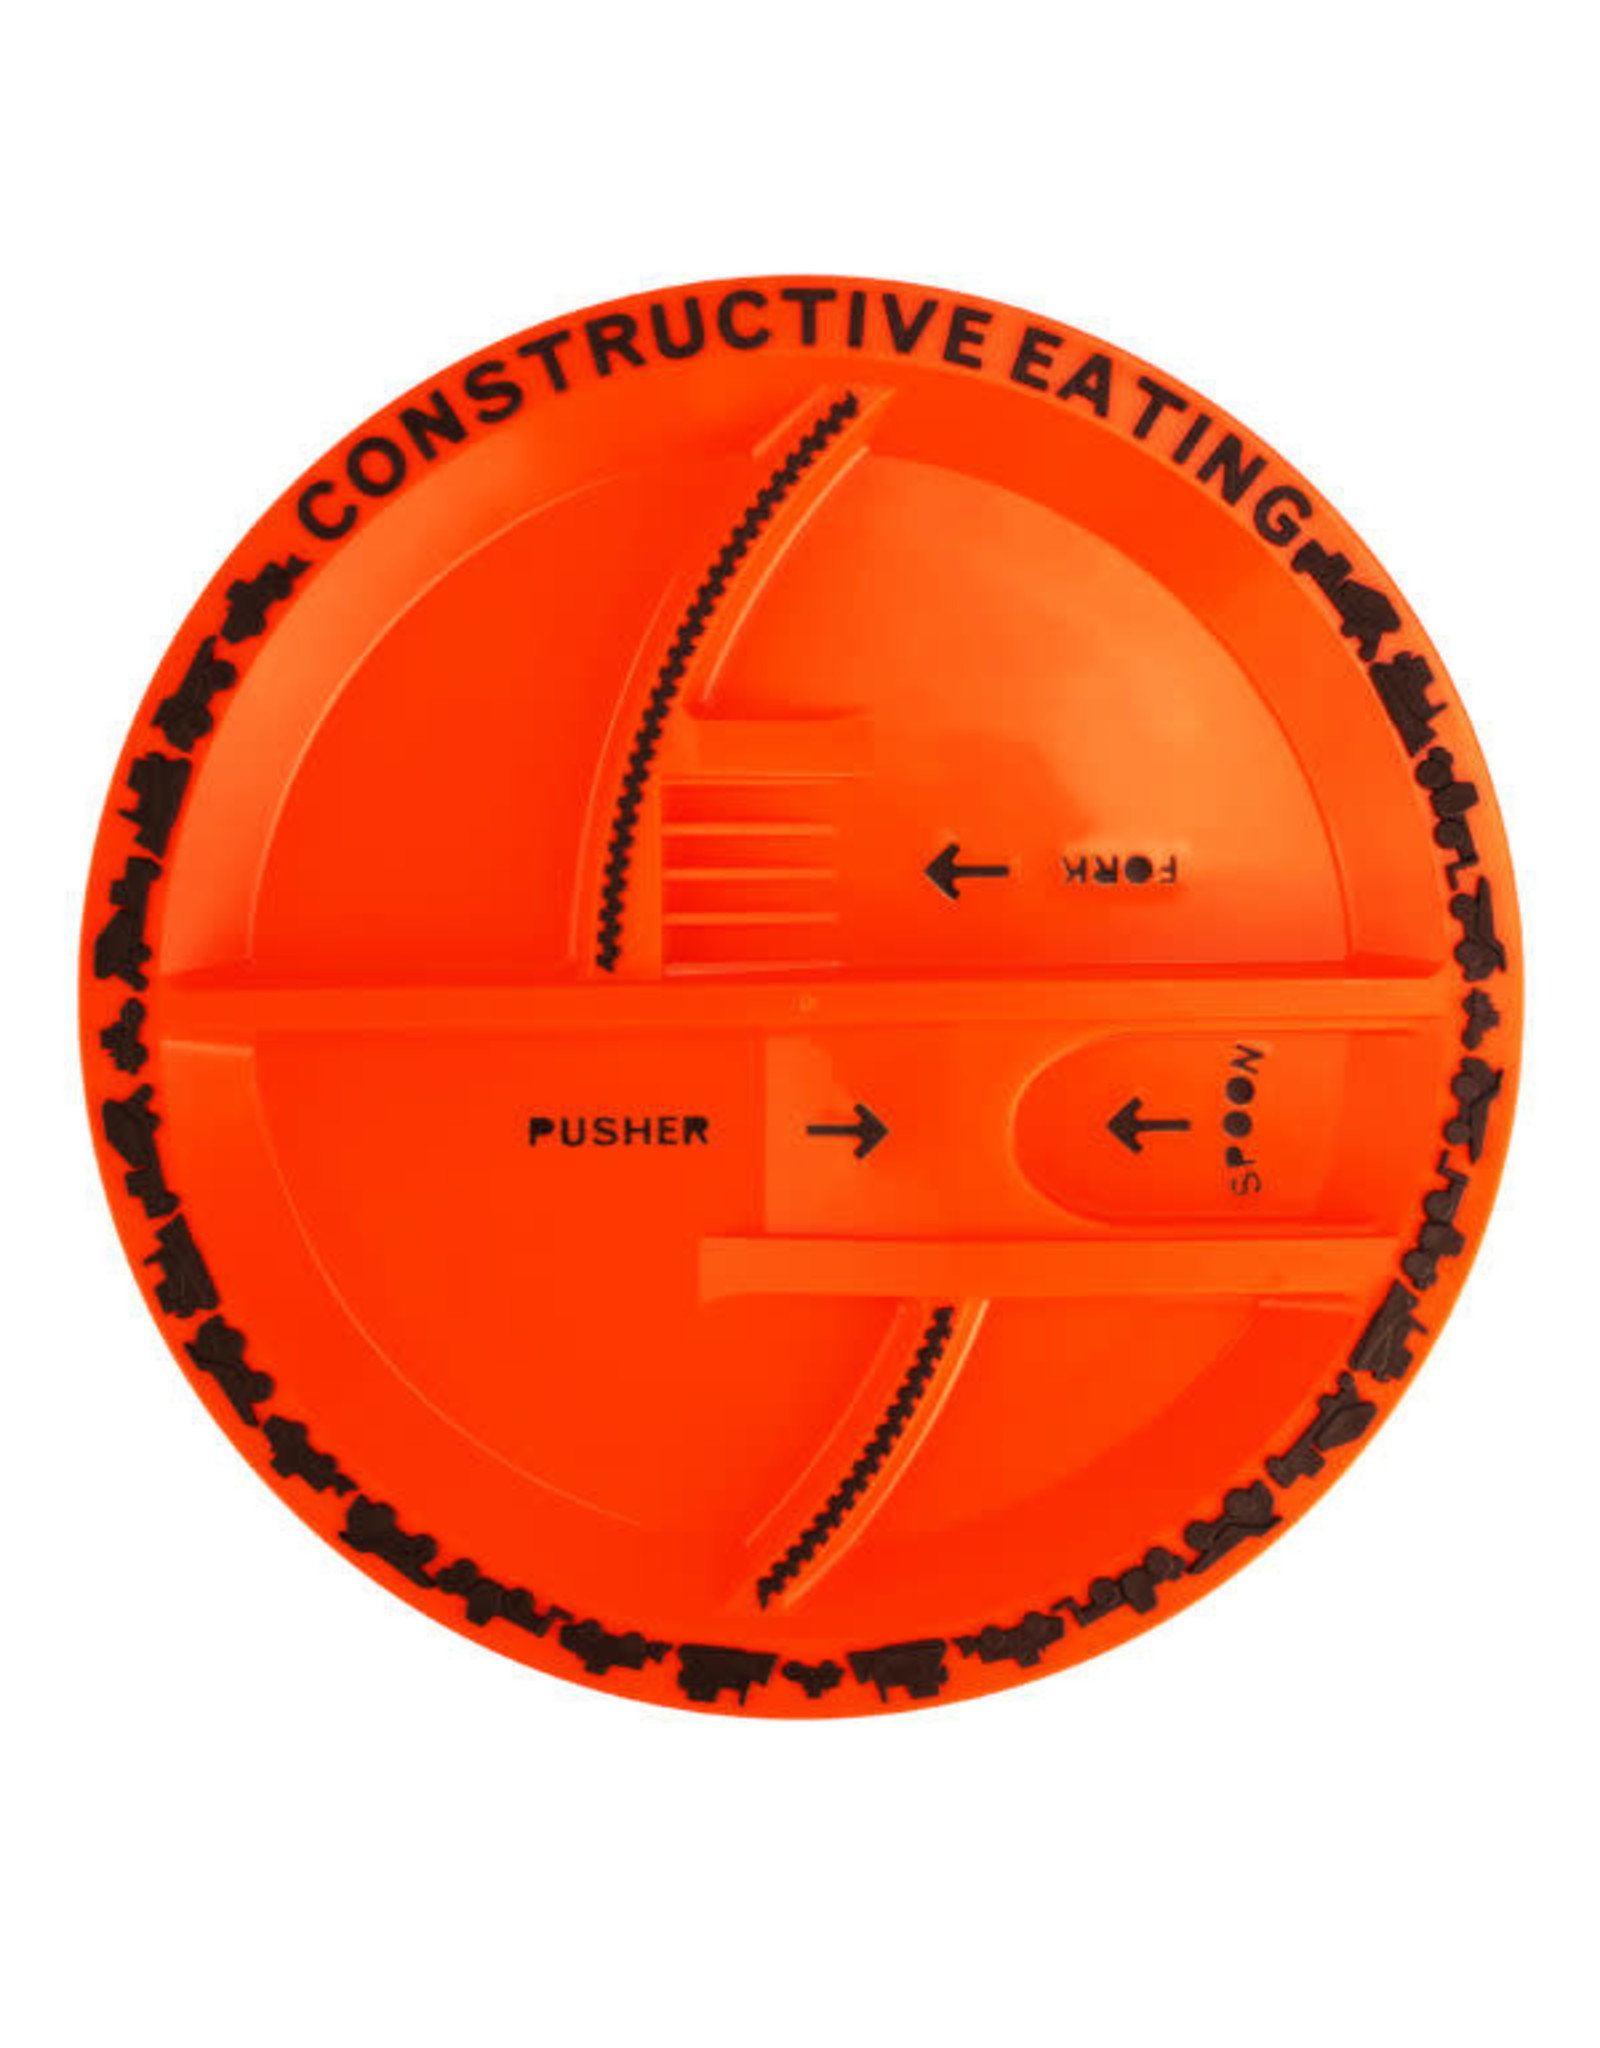 Constructive Eating Constructive Eating: Plates